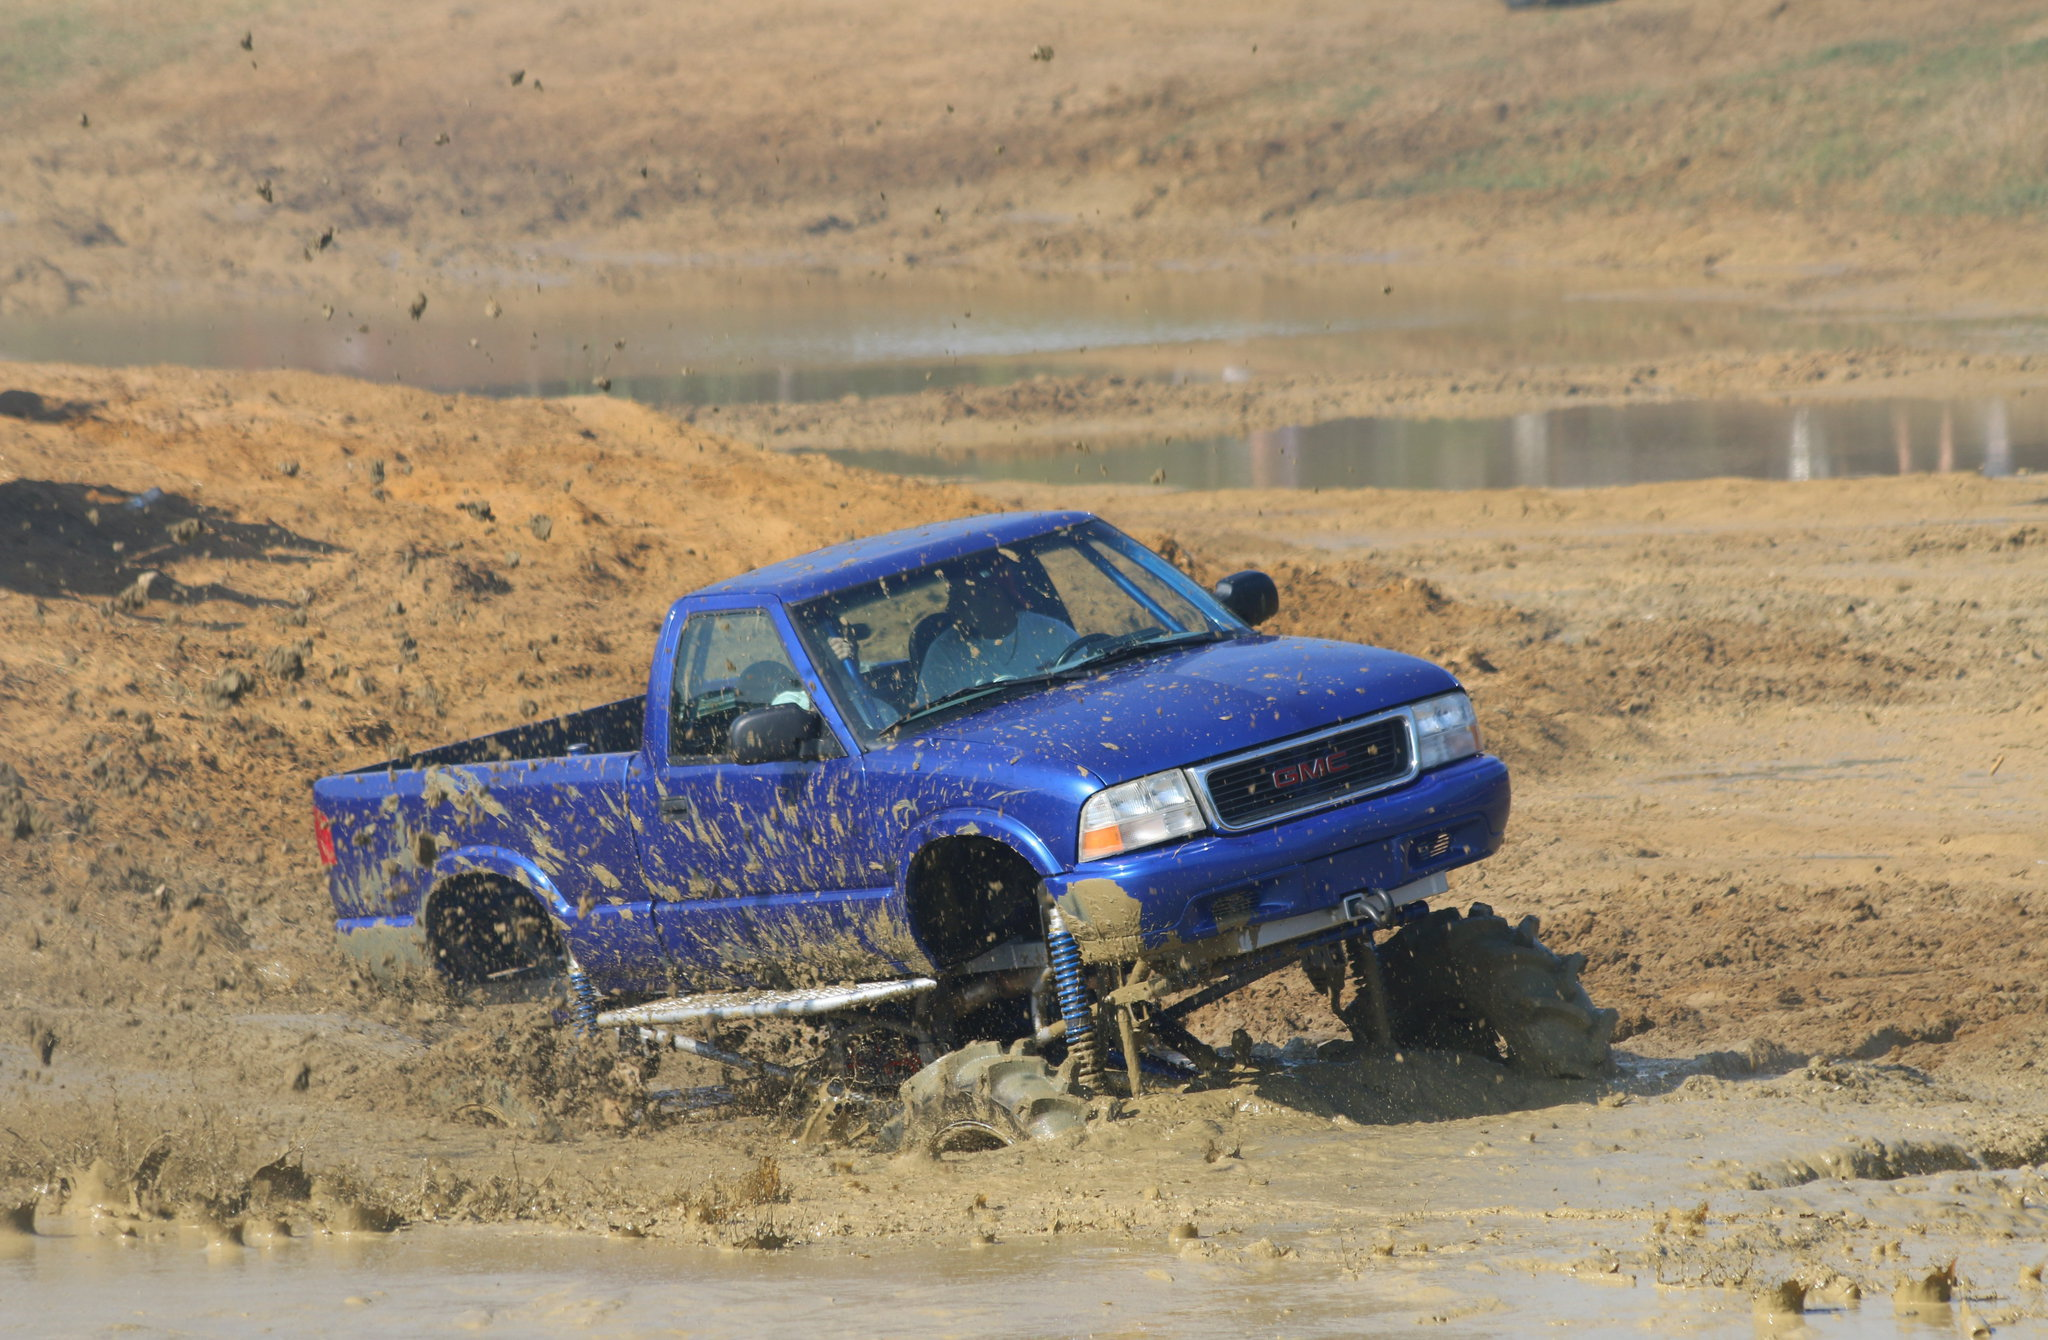 1998 chevy s10 mega truck in mud